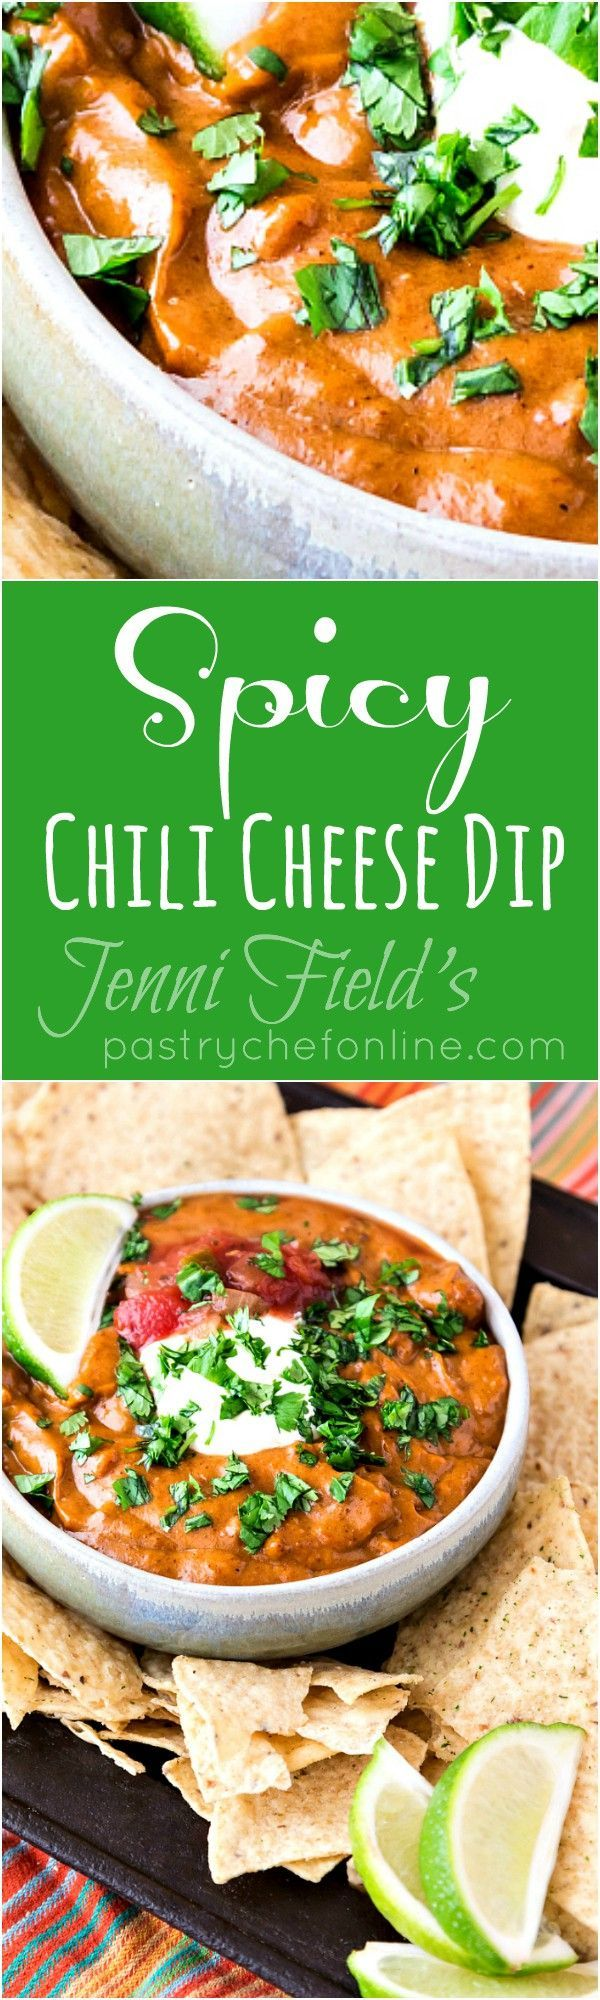 This spicy chili cheese dip recipe makes enough queso to serve a crowd. With several ways to adjust the spiciness, this dip is sure to please almost everyone! | pastrychefonline.com